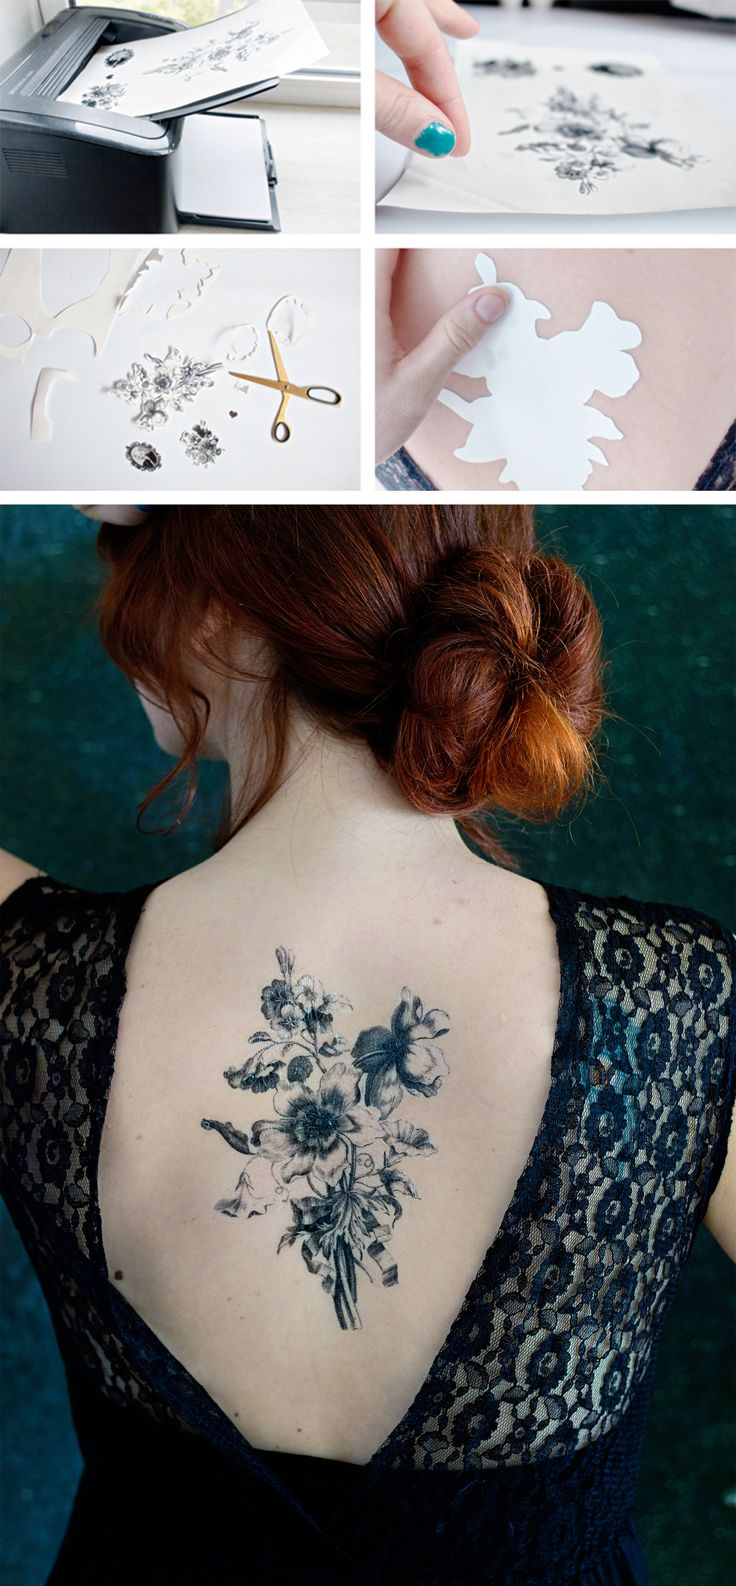 Did you know that you can make your own temporary tattoos? DIY by Lana Red Studio